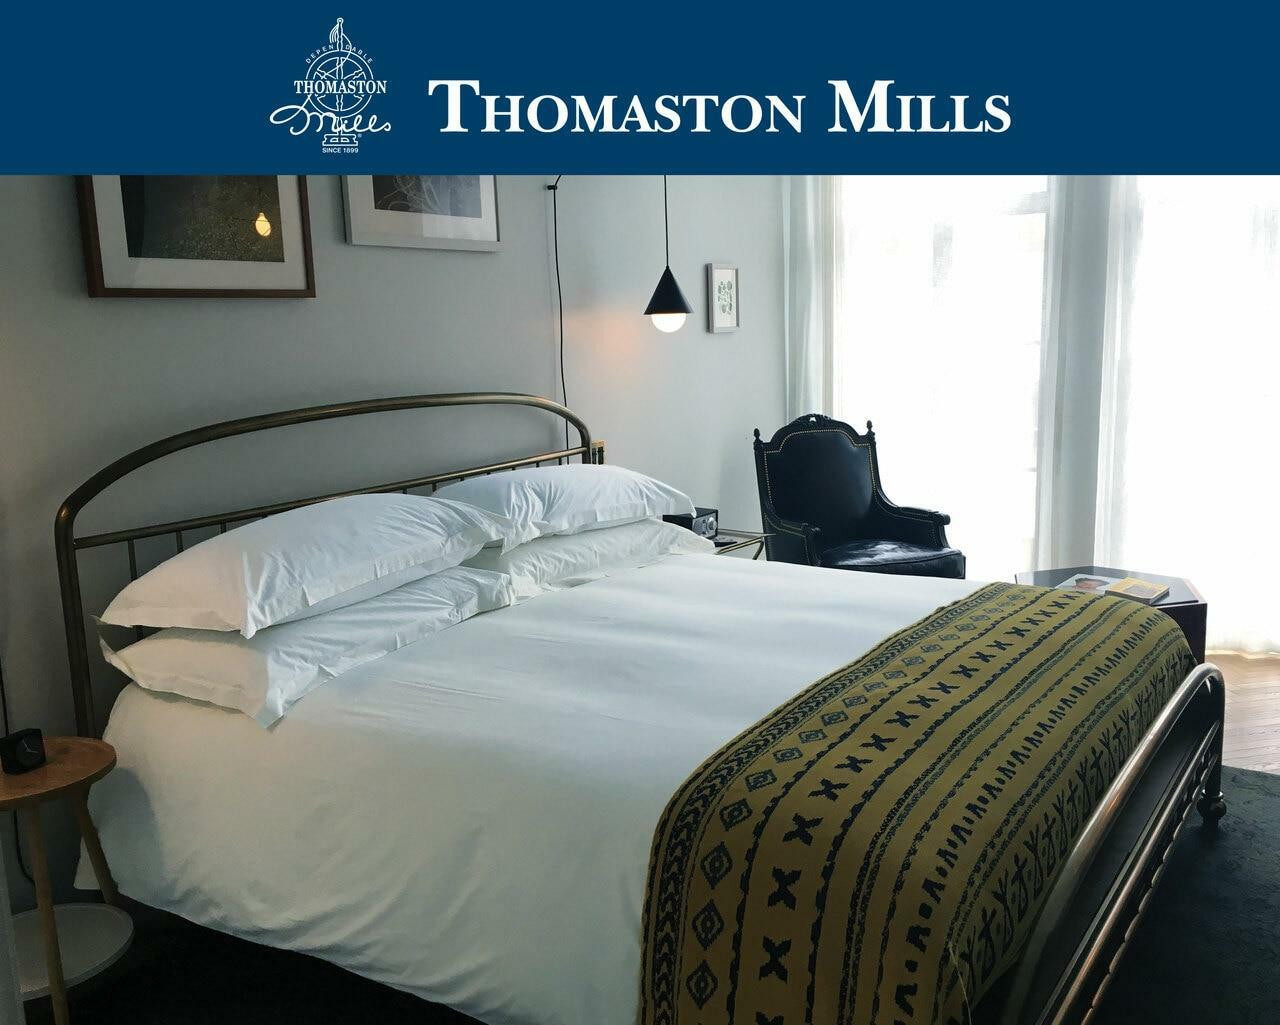 THOMASTON MILLS Thomaston Mills T300 Royal Suite-Plain Weave - All Sizes